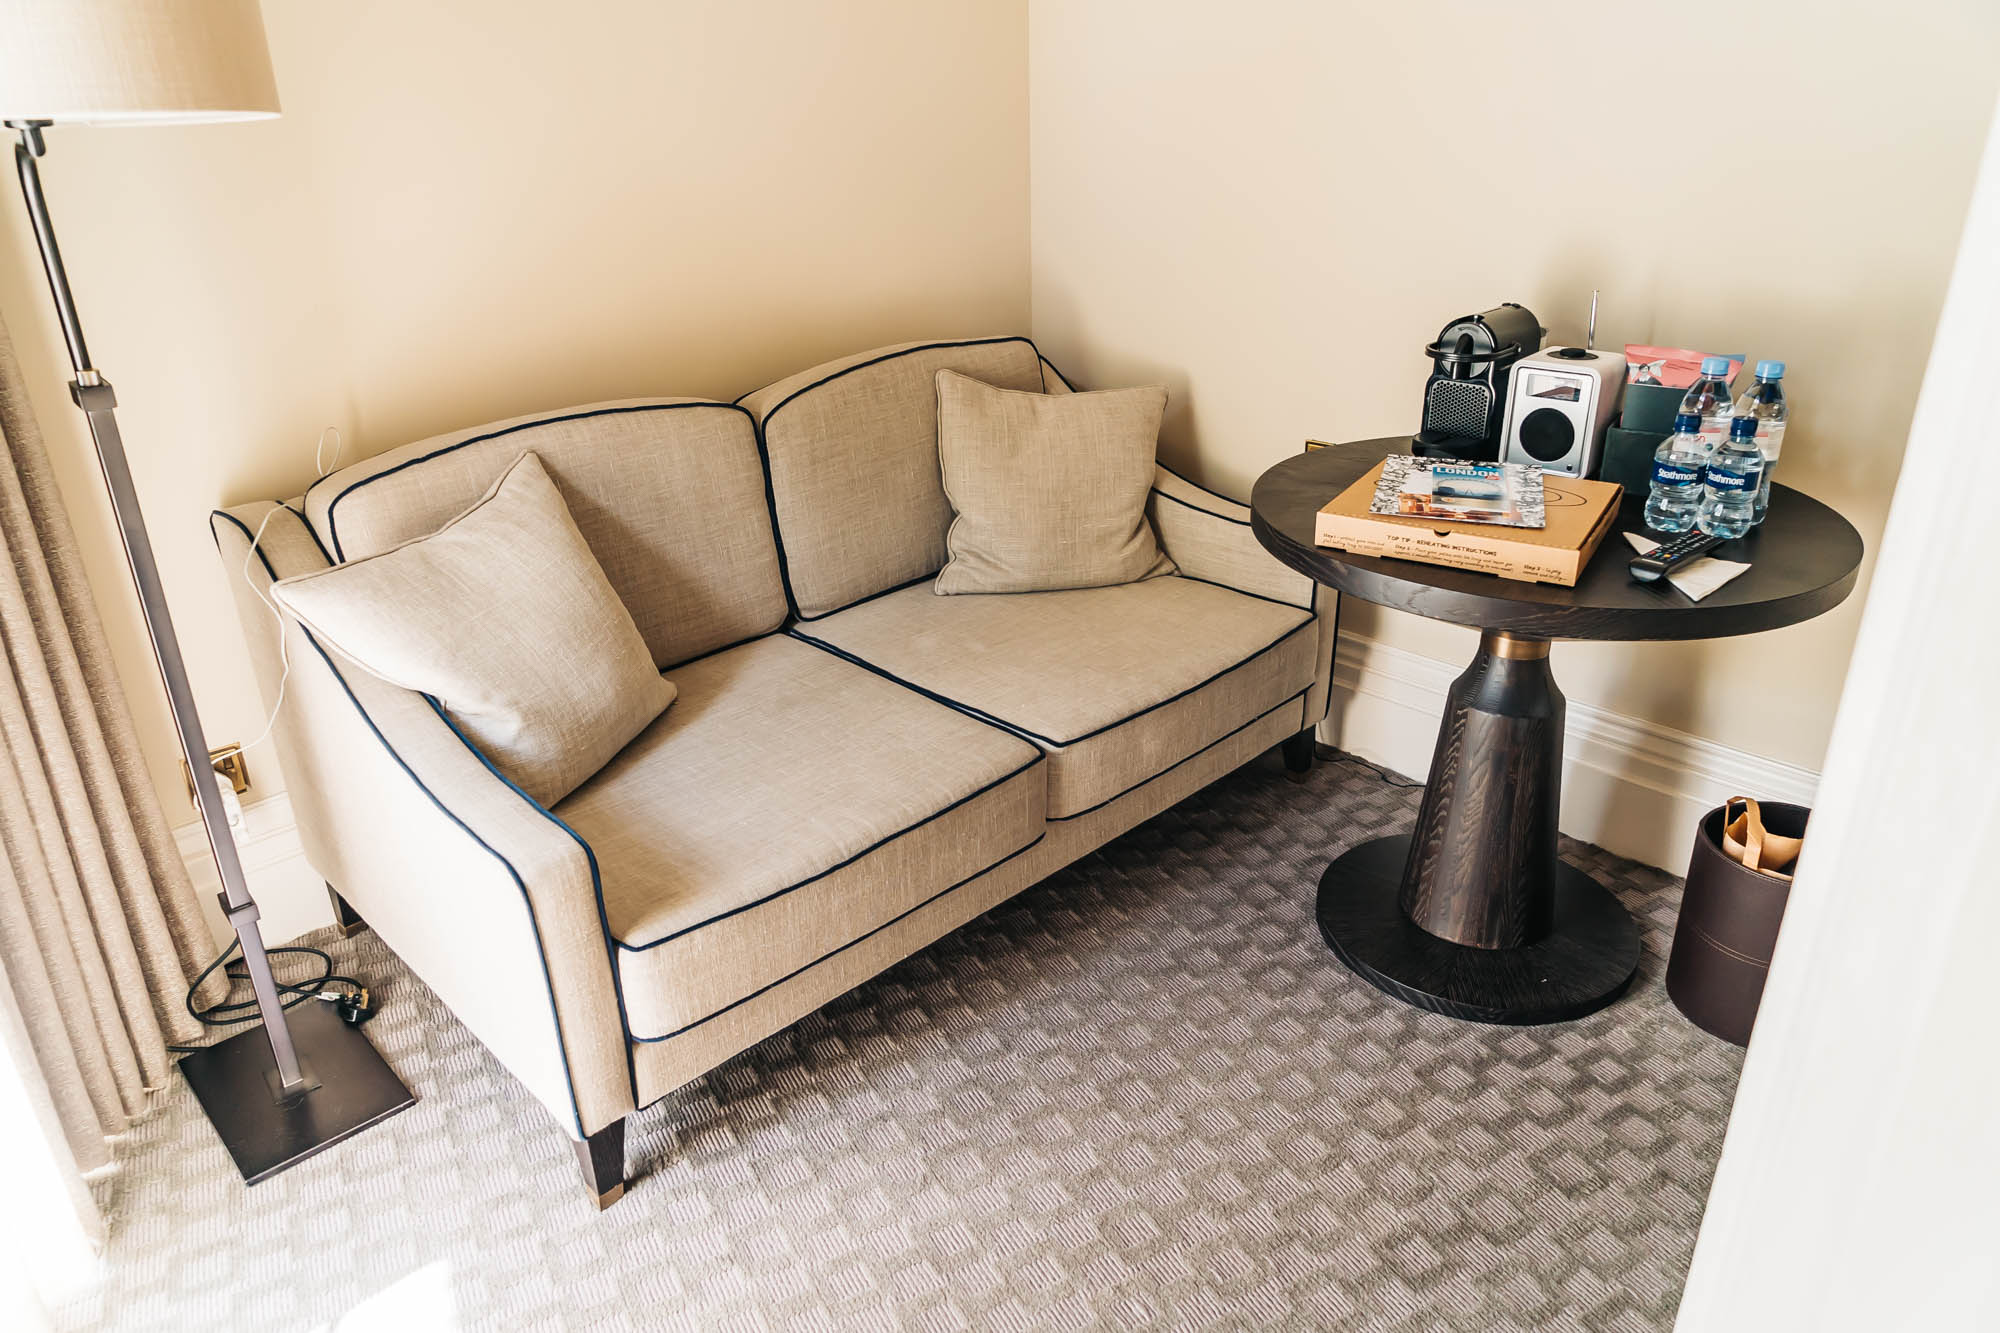 Separate room with a table, sofa and TV